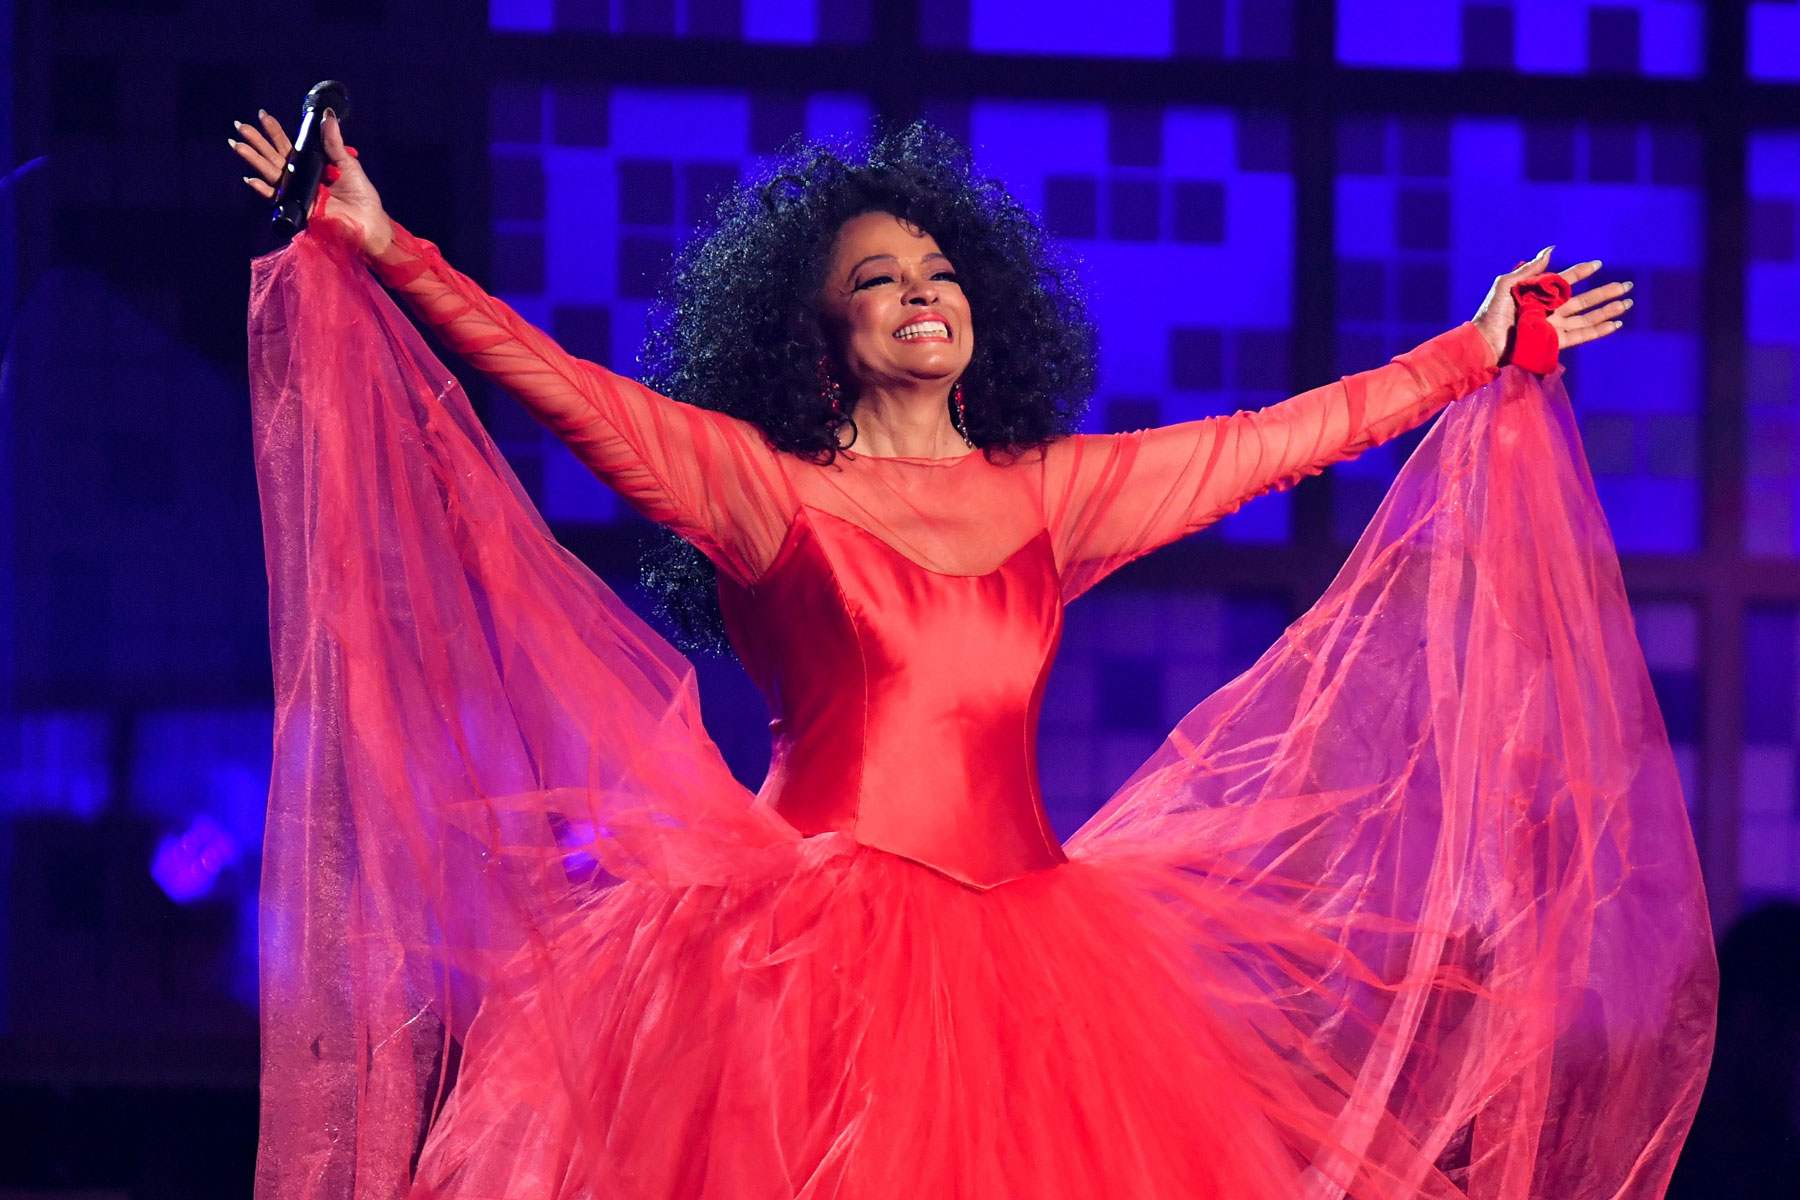 Image result for grammys 2019 diana ross gif